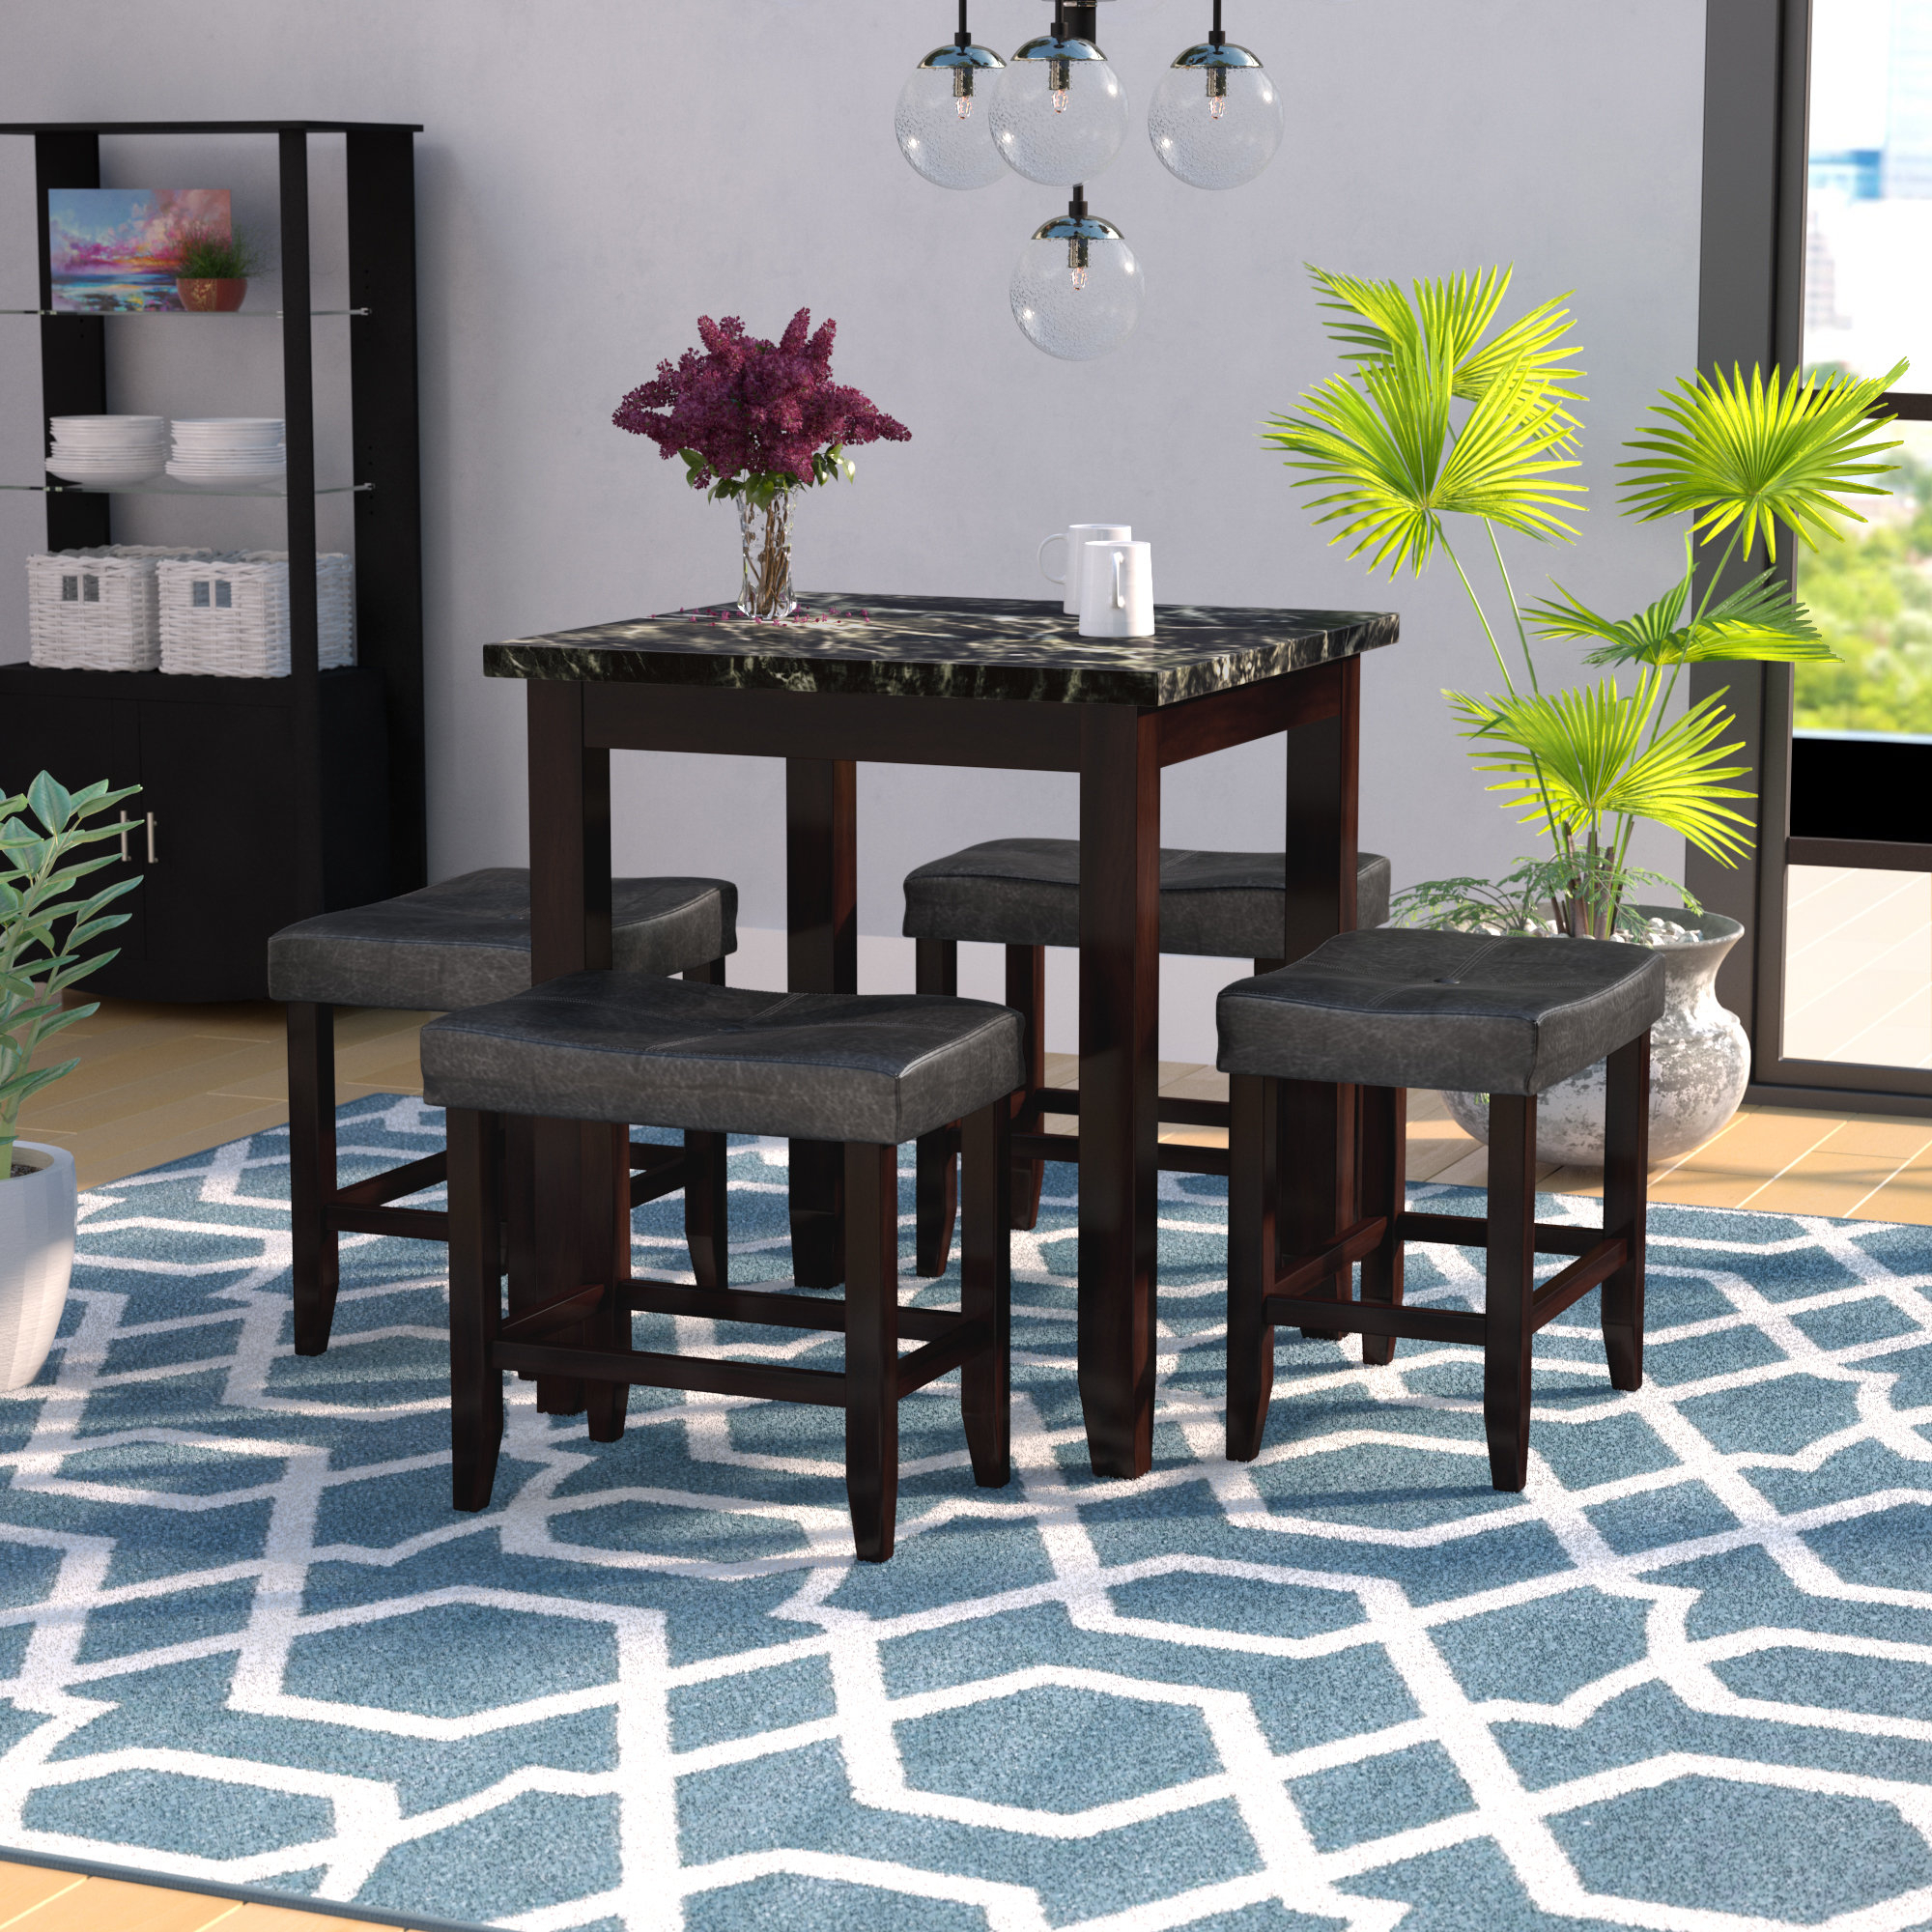 Dehaven 5 Piece Counter Height Dining Set Intended For Best And Newest Hood Canal 3 Piece Dining Sets (Image 3 of 20)